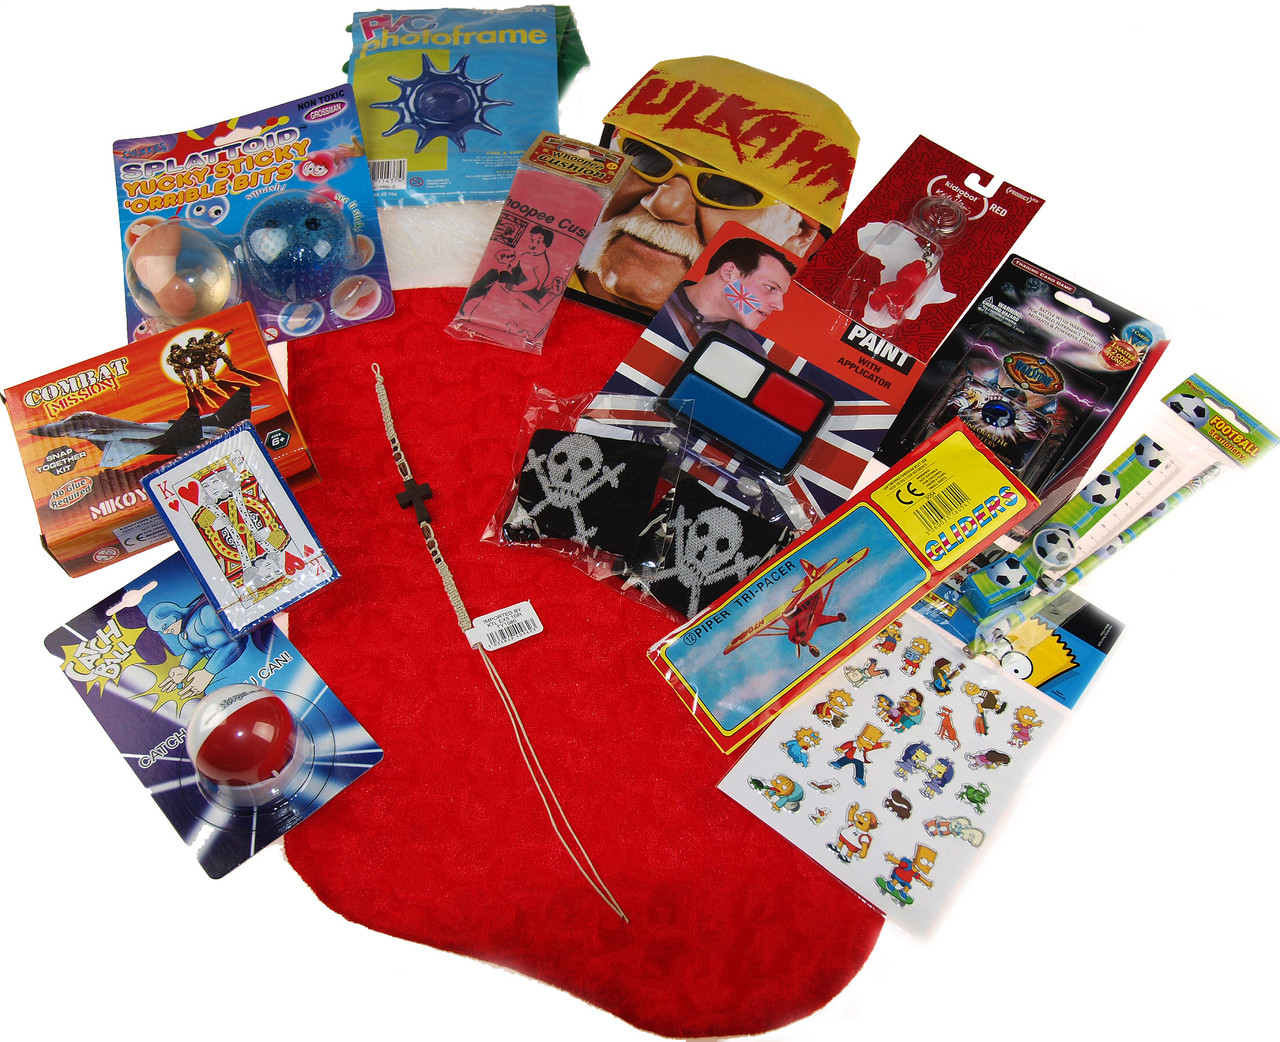 Girls 2019 Pre Filled Christmas Stocking Stuffed With 15 Toys And Novelties